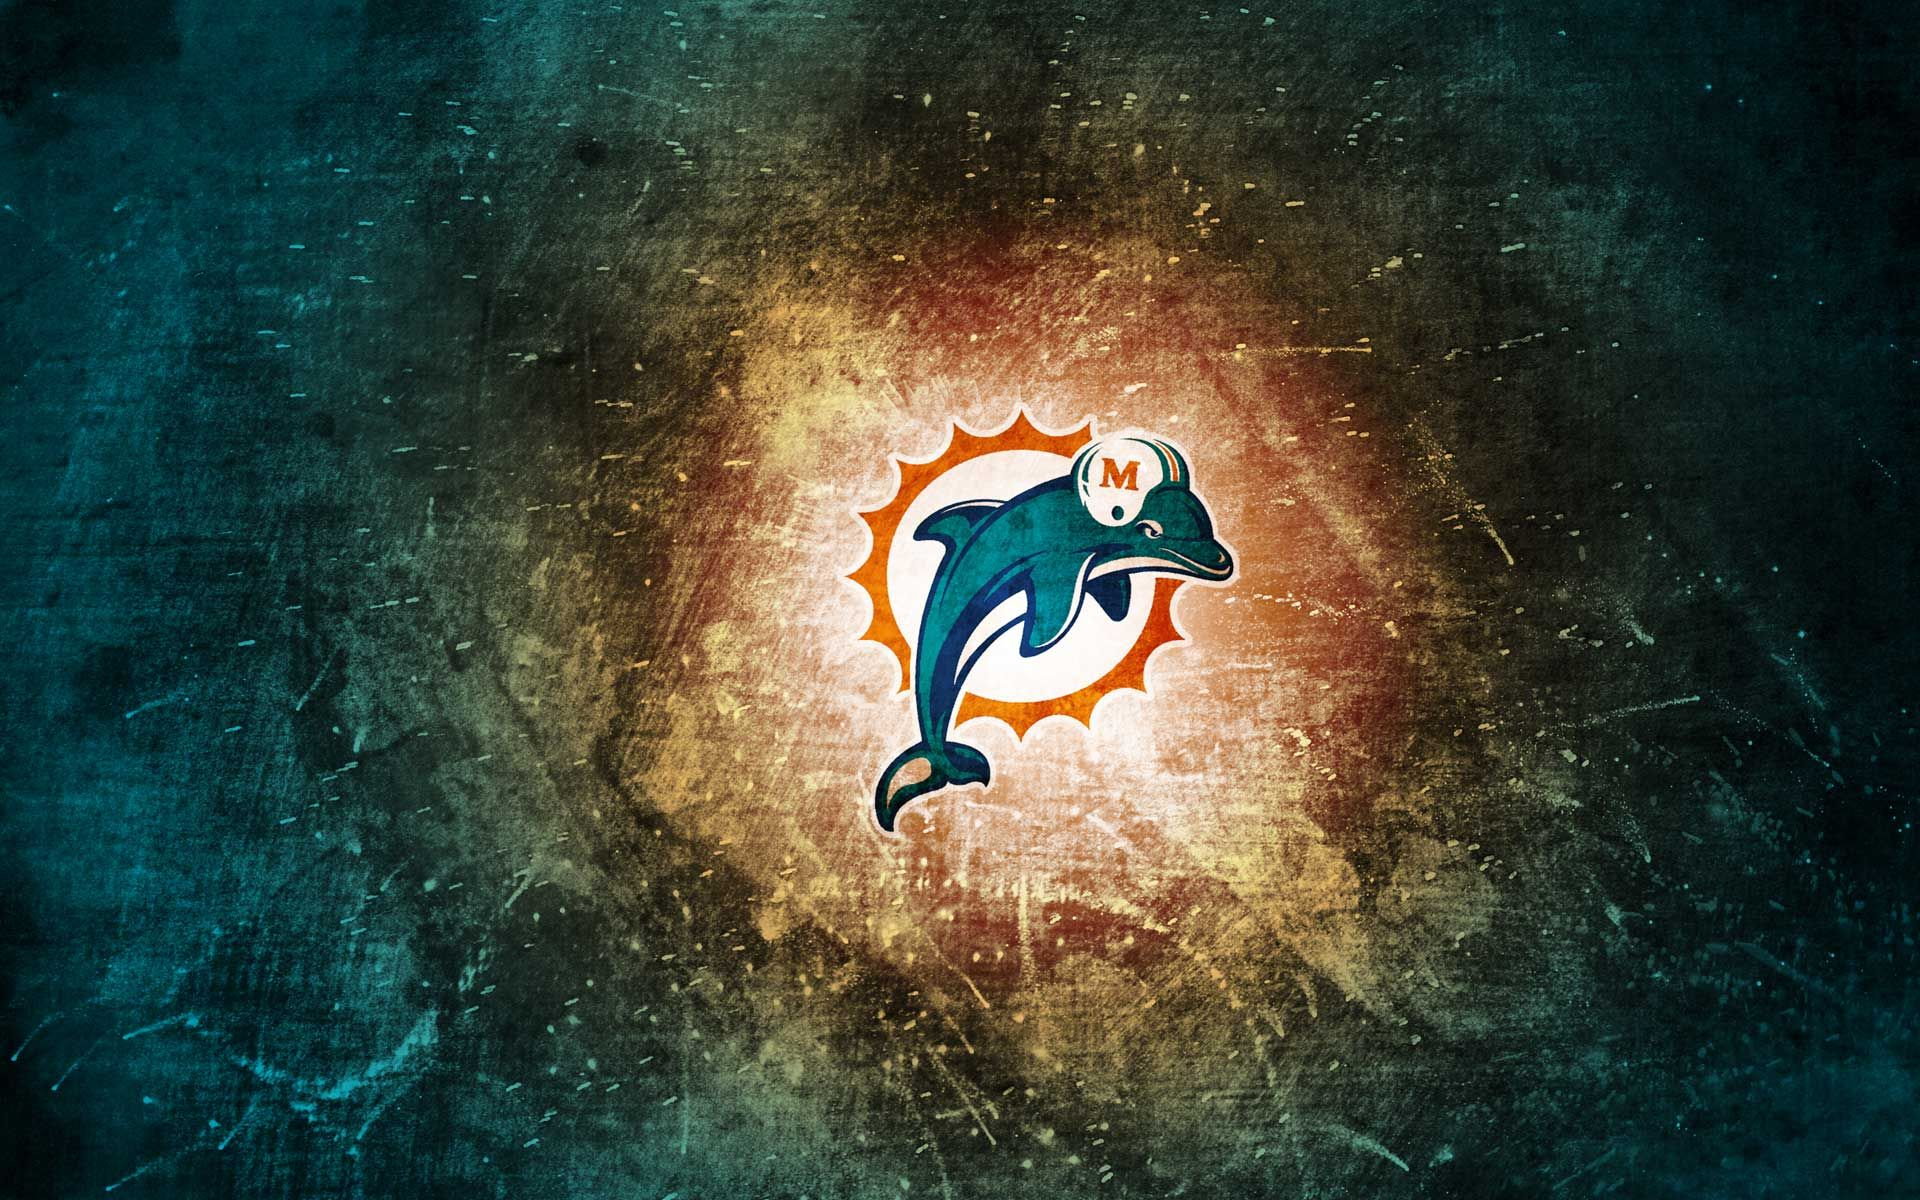 Free Miami Dolphins Wallpaper Screensavers 1024×1024 Free Miami Dolphins Wallpapers (36 Wallpapers) | Adorable Wallpapers